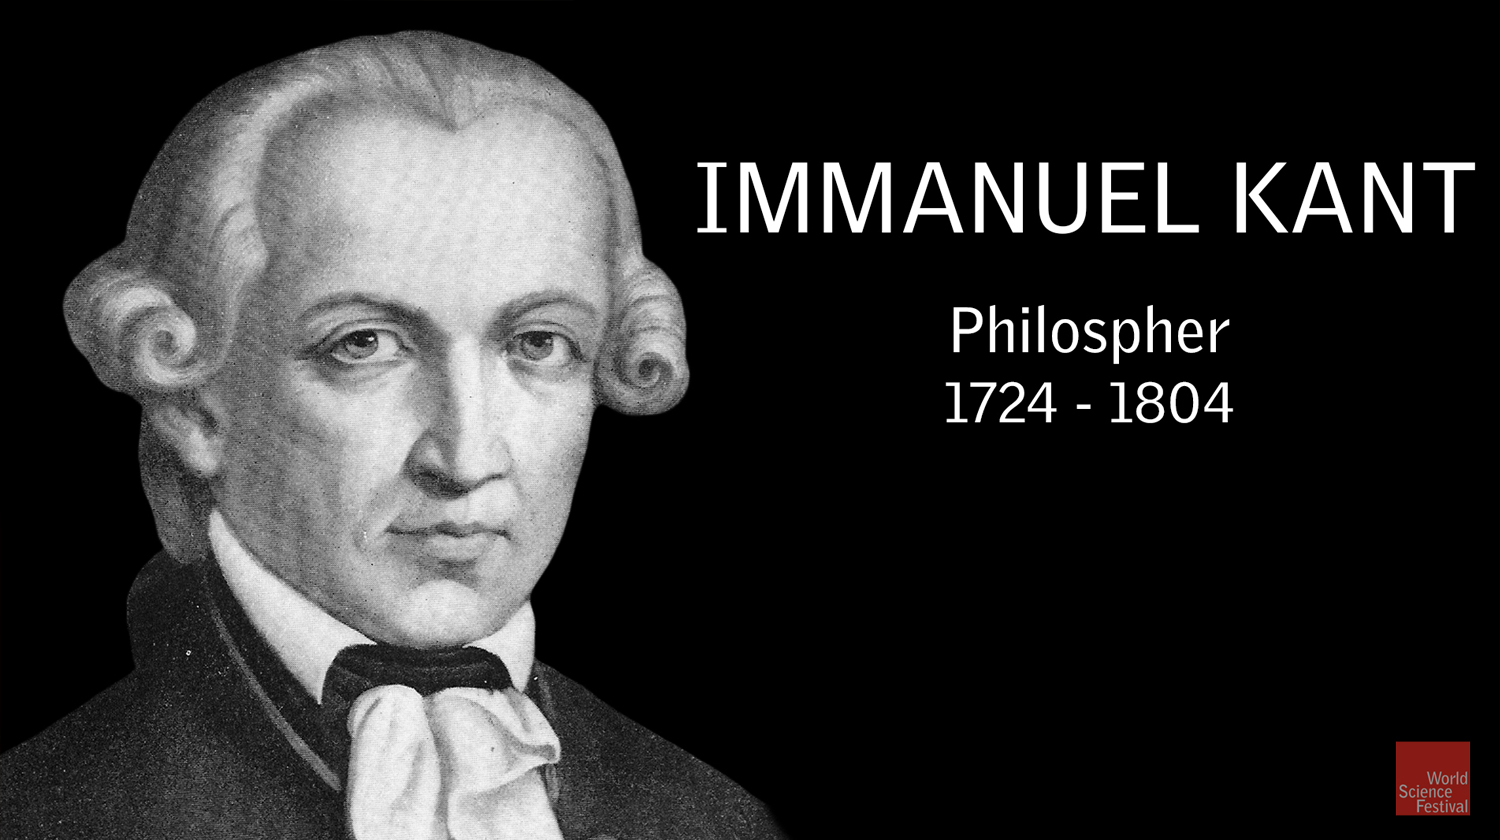 immanuel kants view on the argument of free will Kant and free will could someone explain kant's view on free will a better but related argument has to do with kant's belief that the world is ultimately.